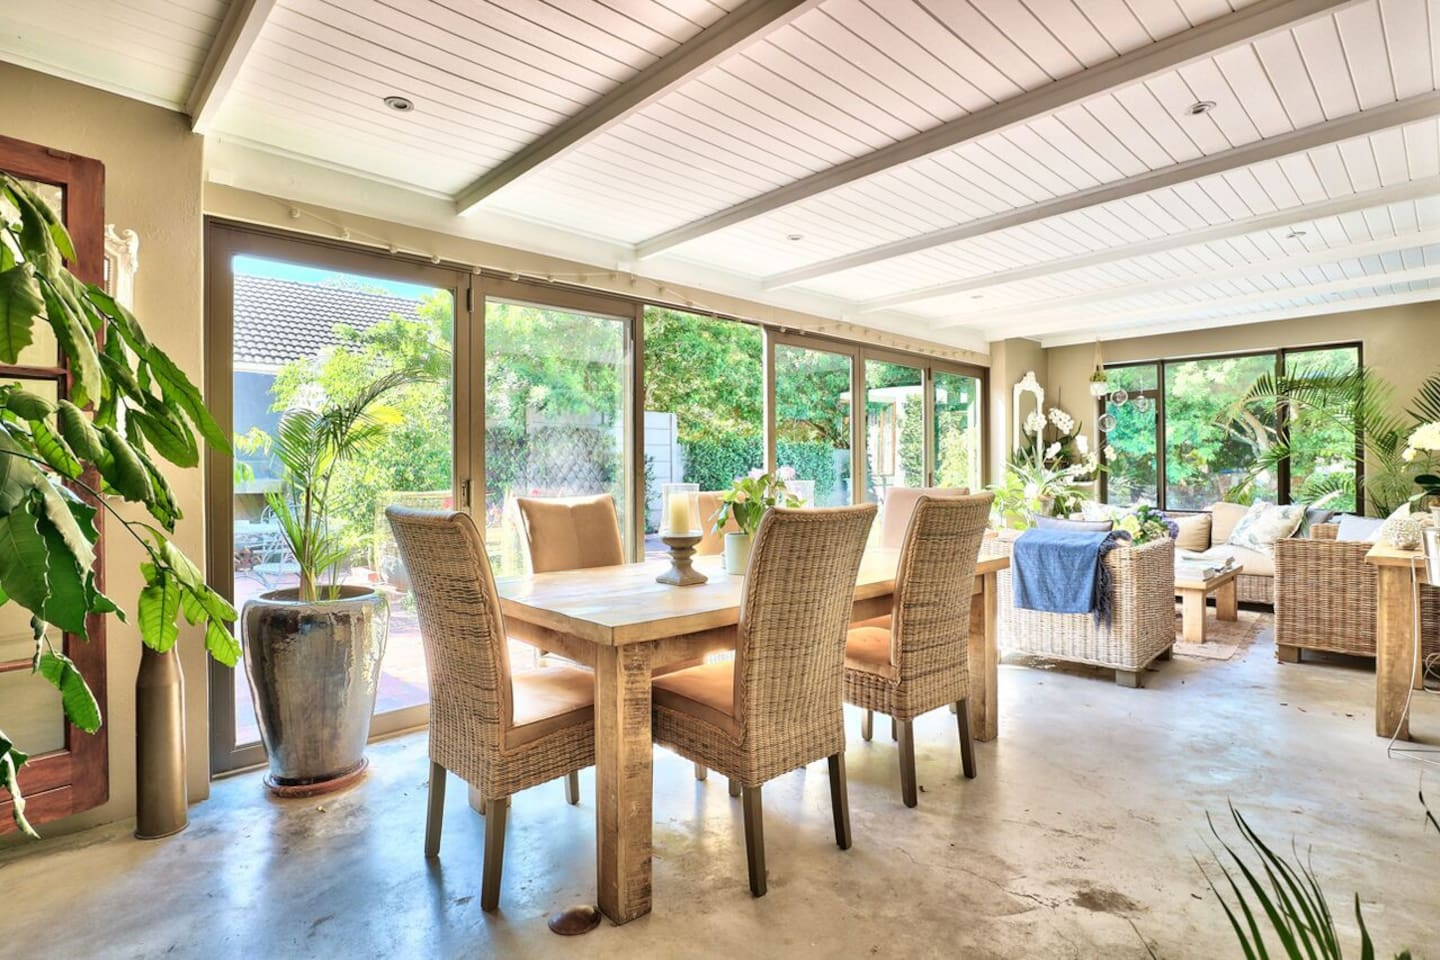 Sun Room looking onto pool and built-in barbecue area